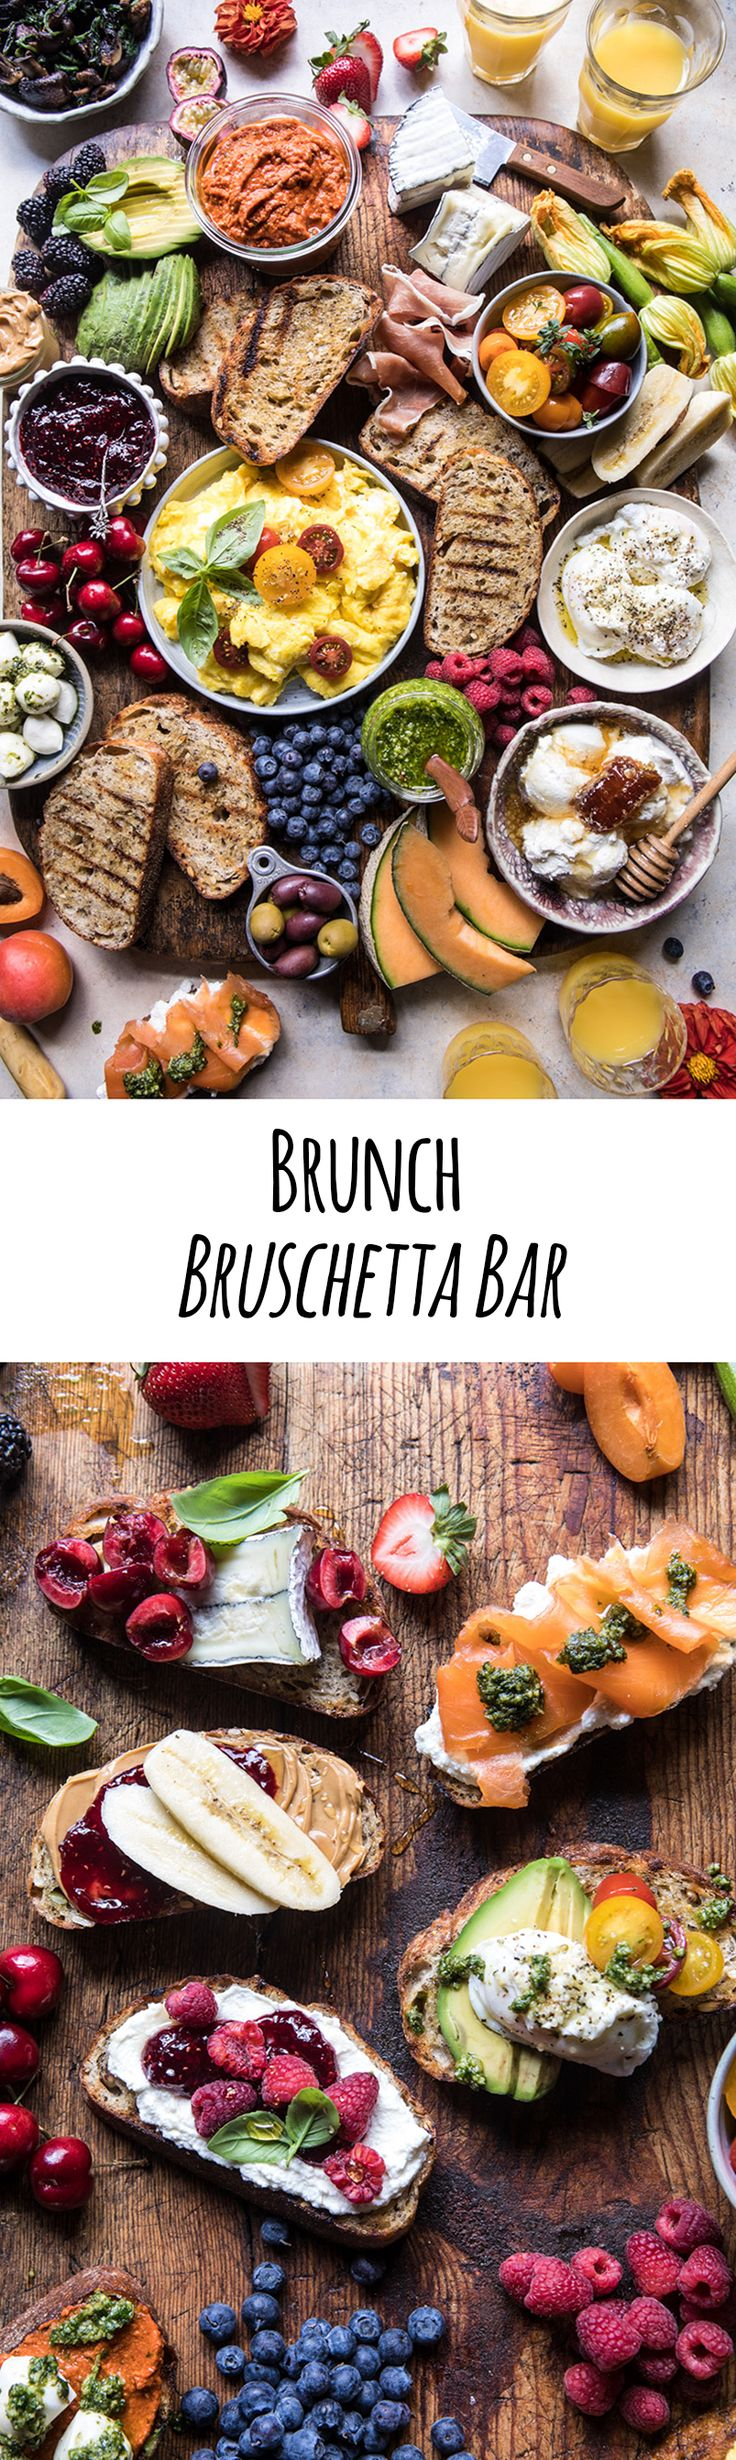 Brunch Bruschetta Bar.